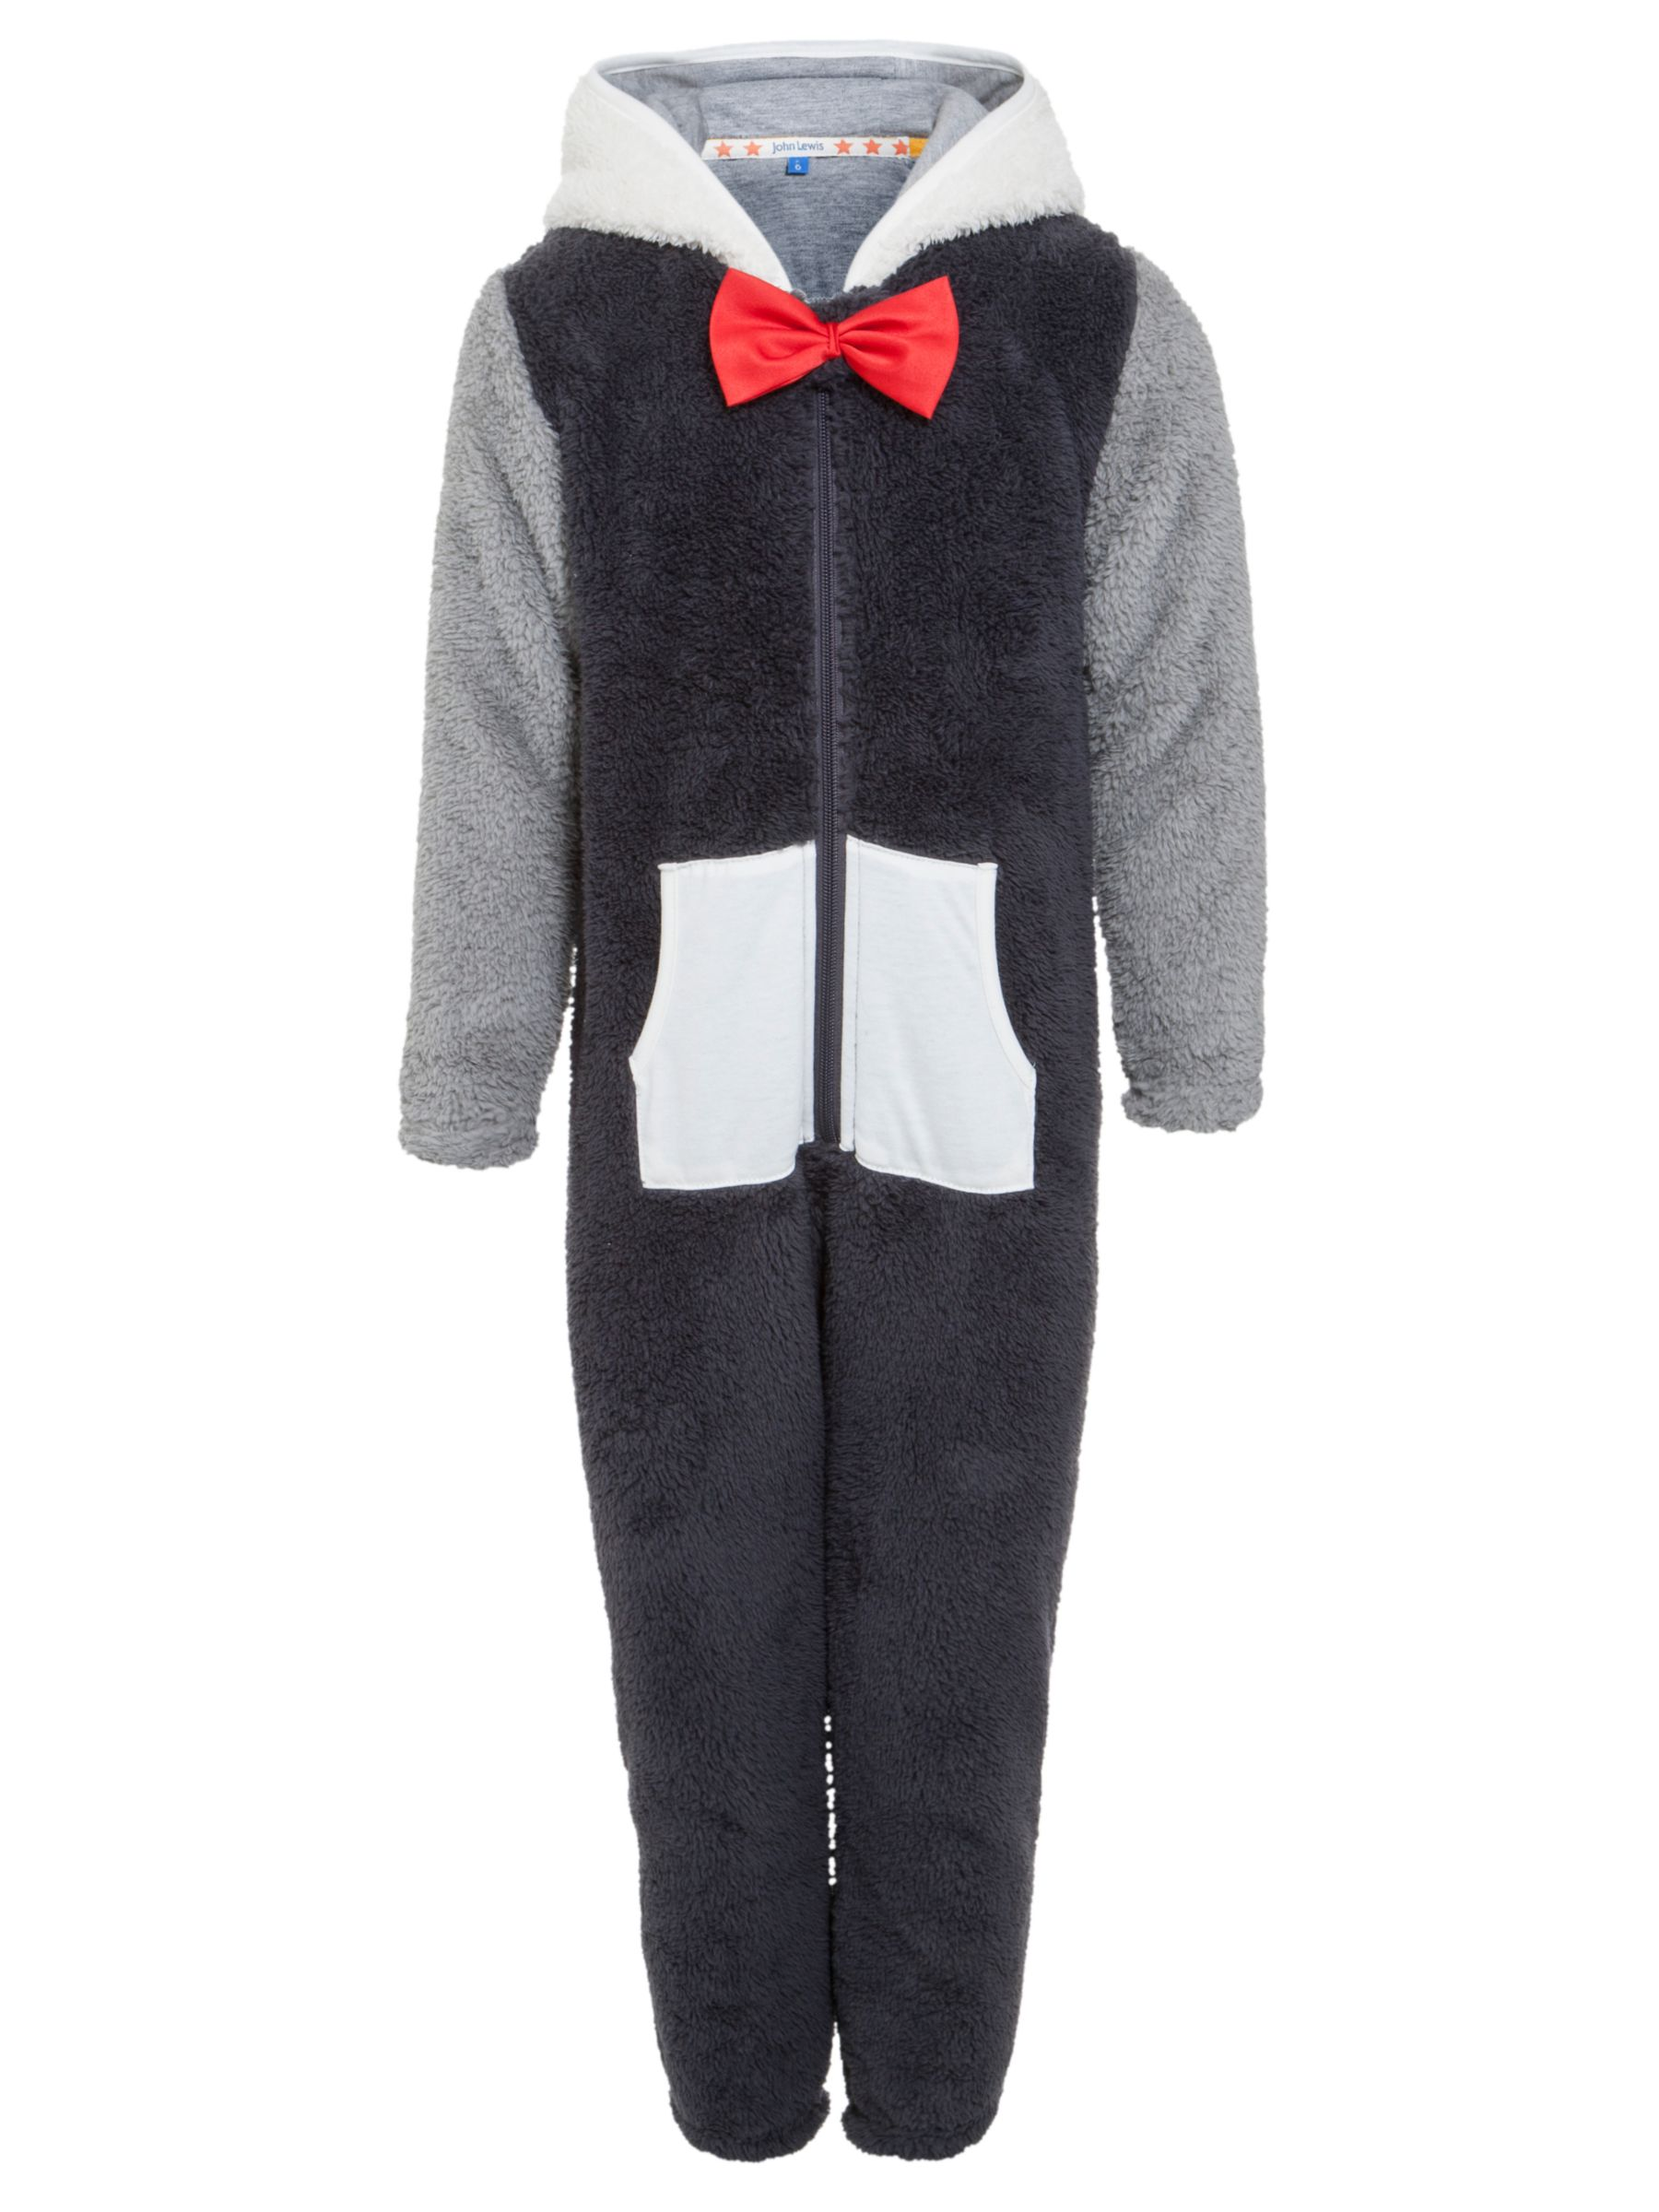 John Lewis Boy Fleece Penguin Onesie, Grey